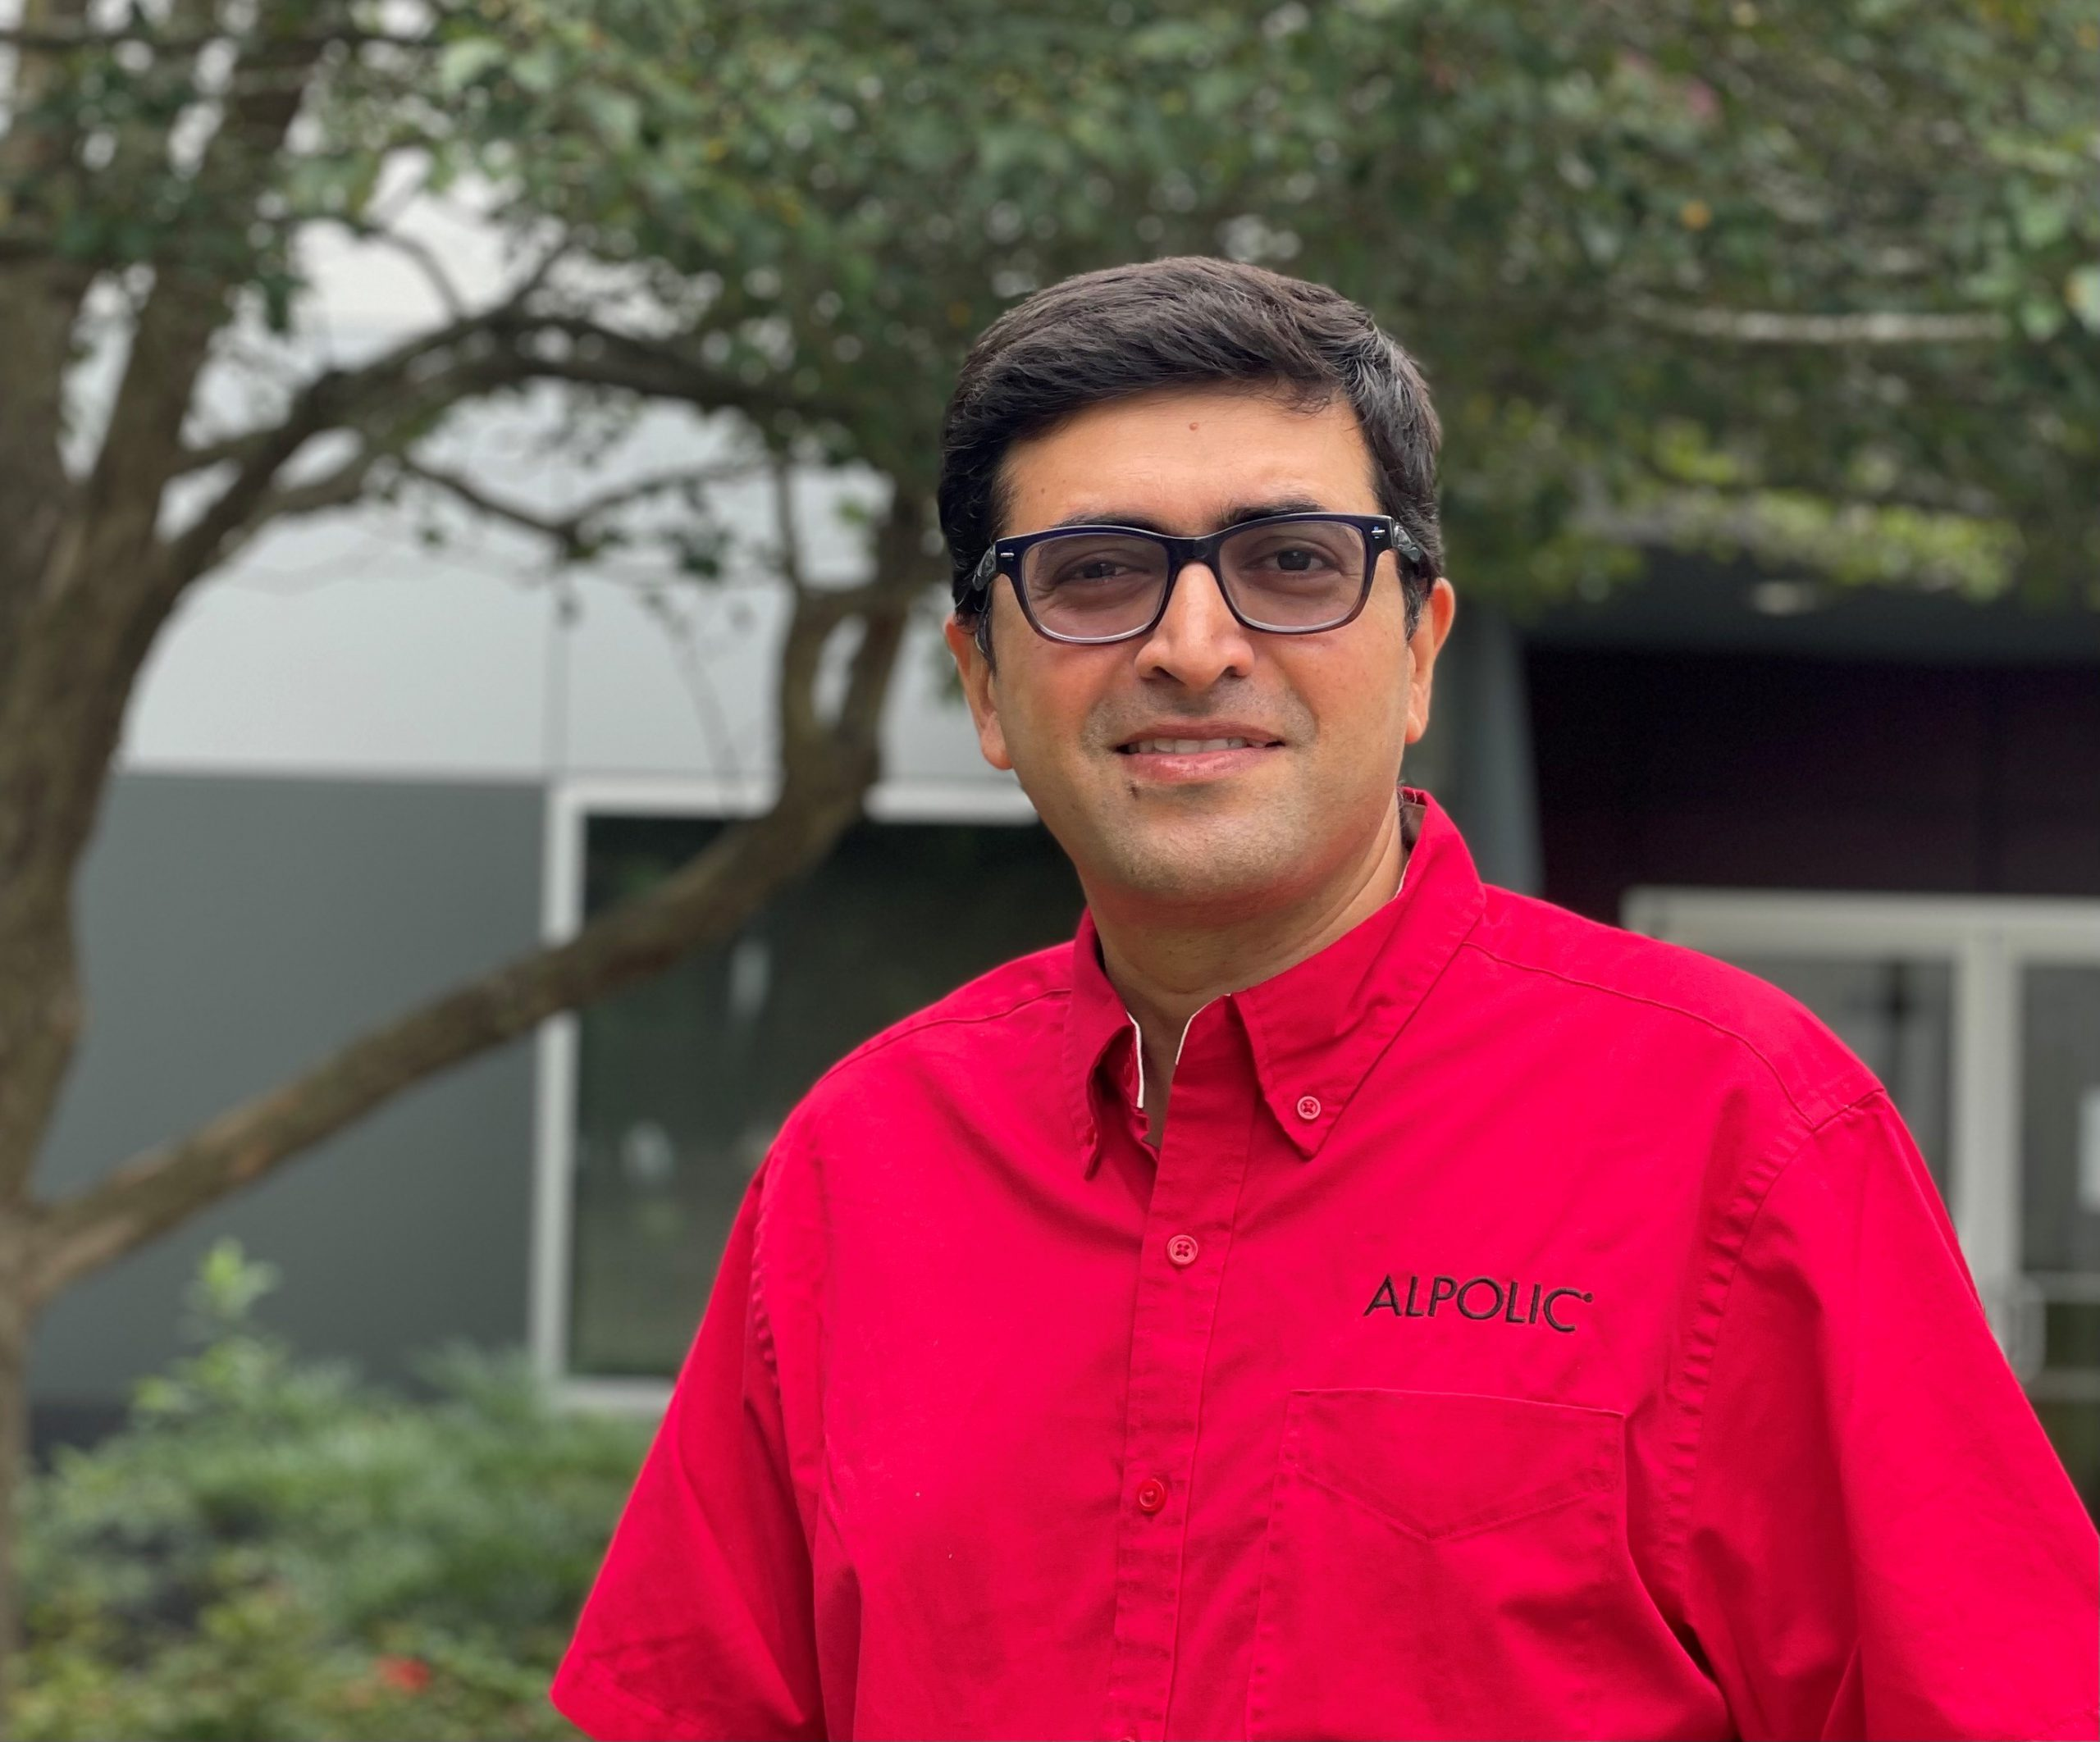 Building on Success, ALPOLIC Americas Hires New Plant Manager